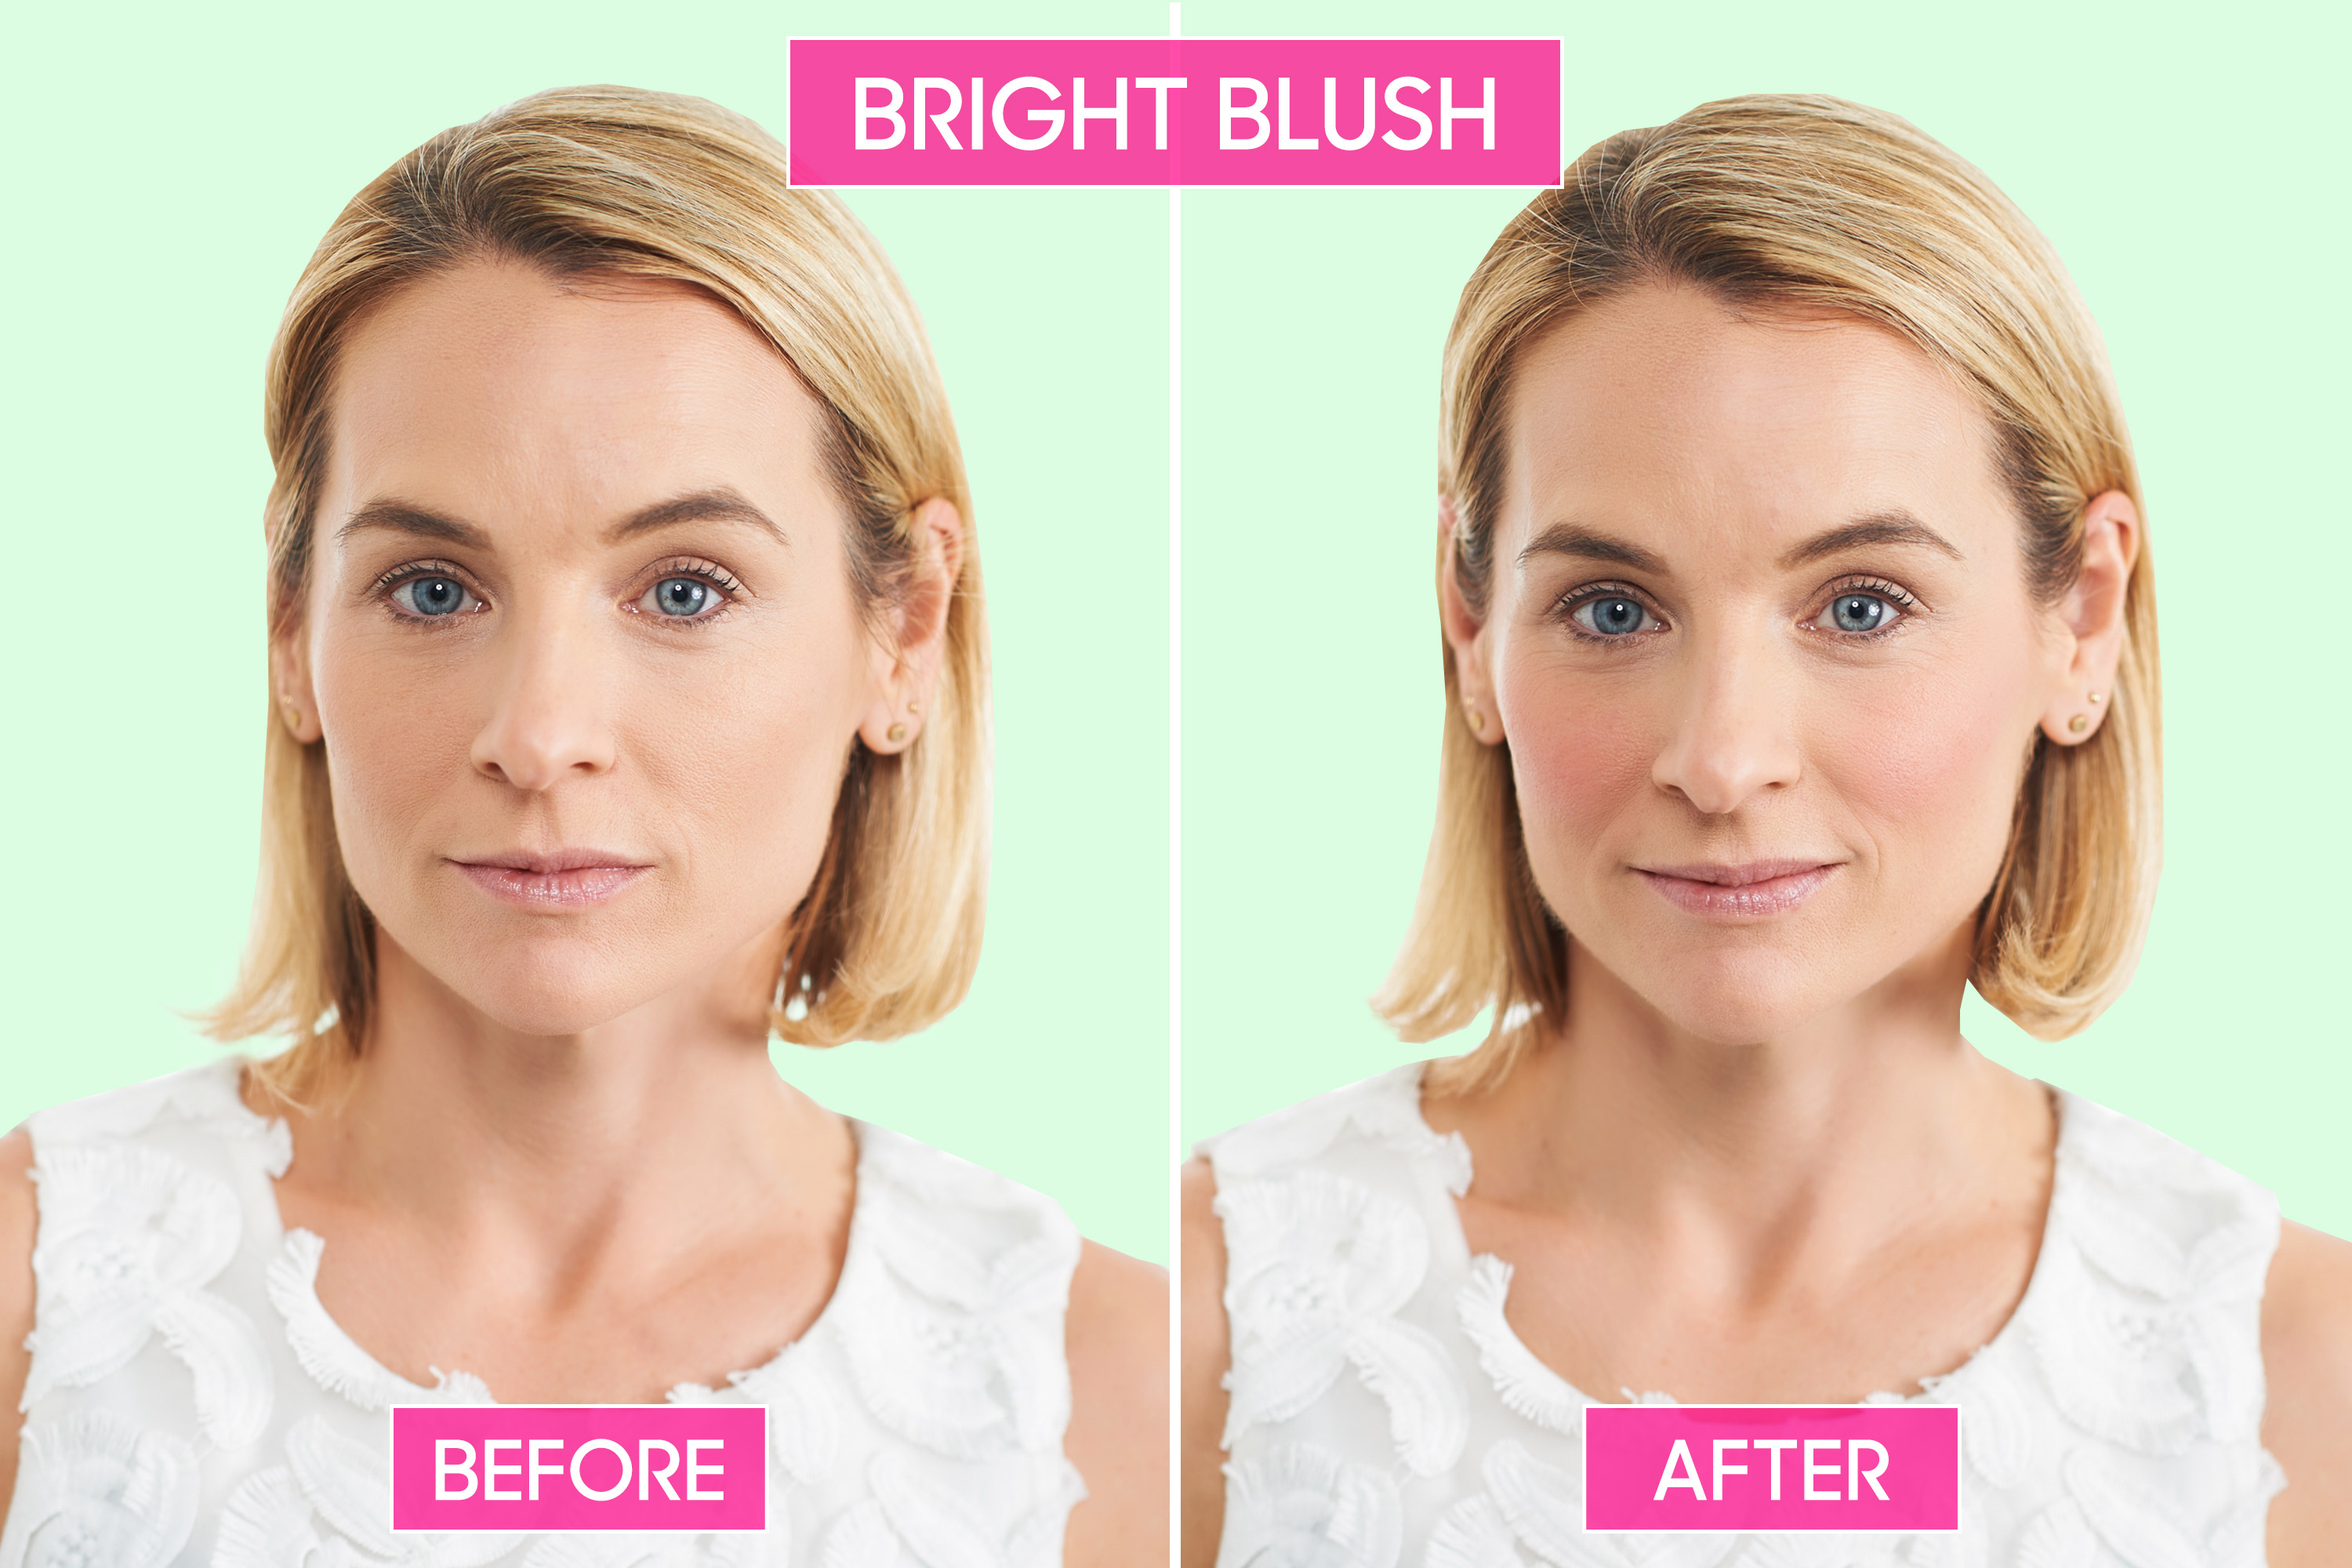 Makeup Trends Women Over 40 Shouldnu0026#39;t Be Afraid To Try